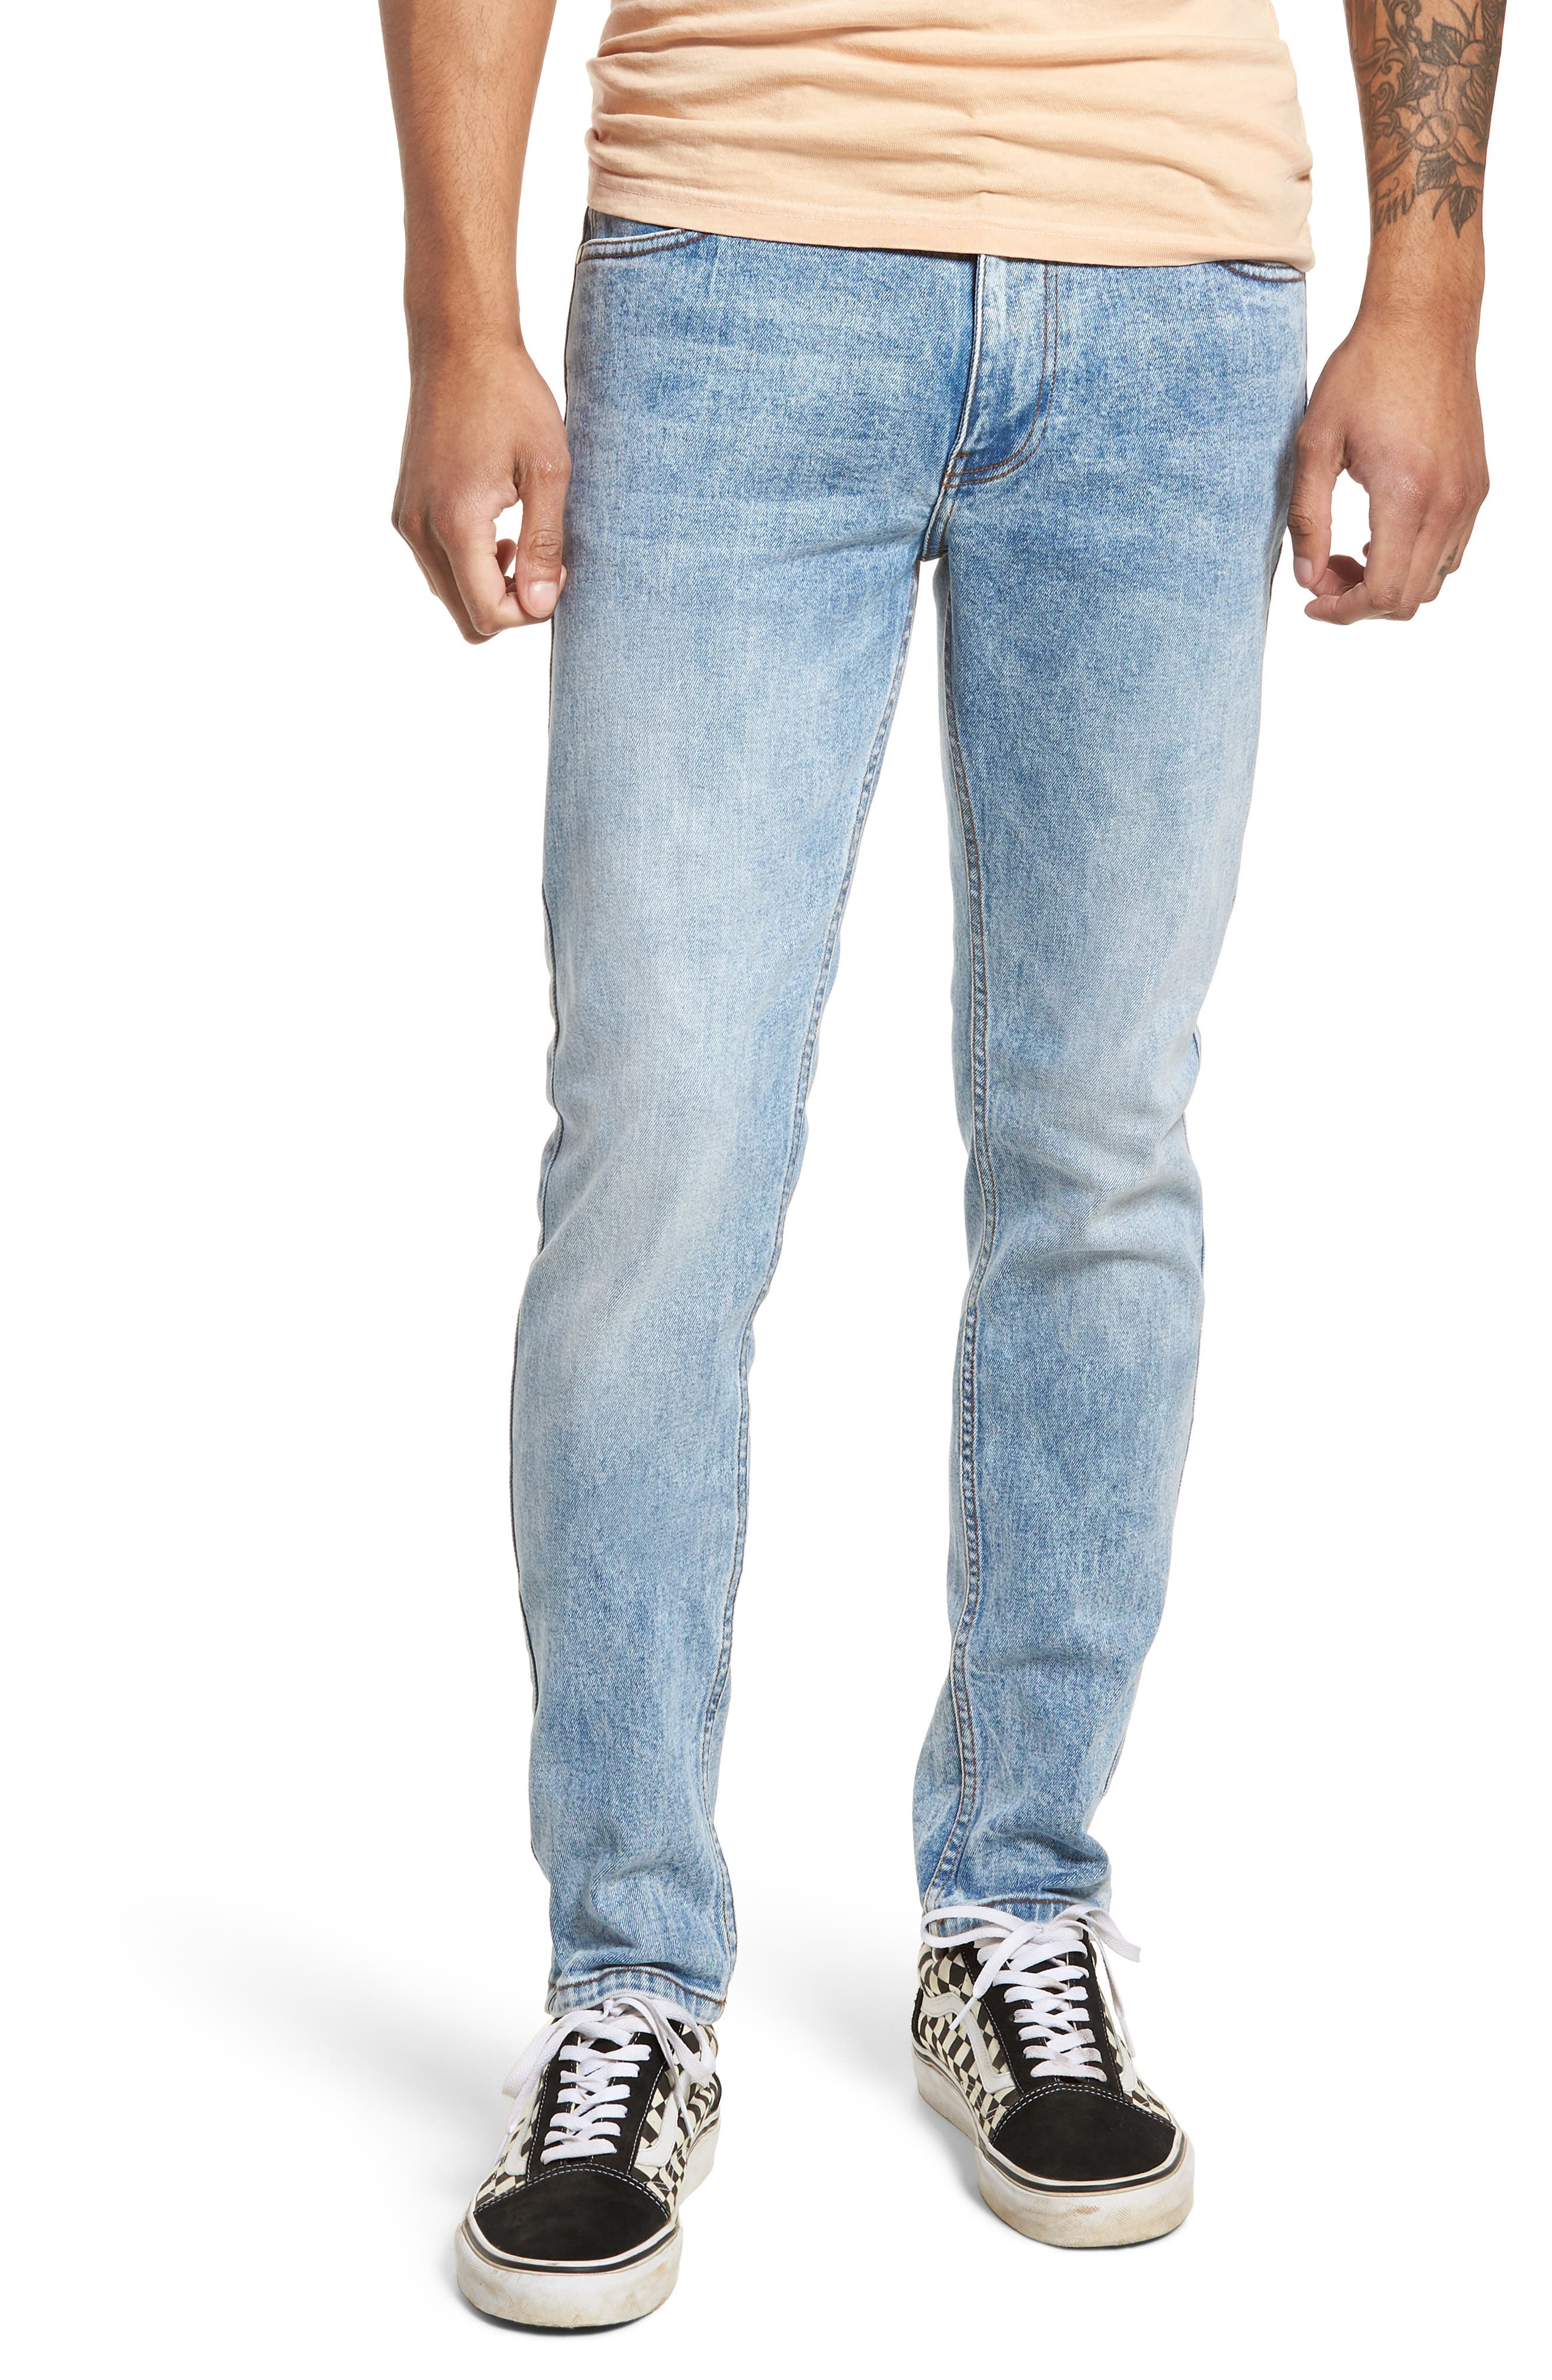 Clark Slim Straight Leg Jeans,                             Main thumbnail 1, color,                             Foggy Blue